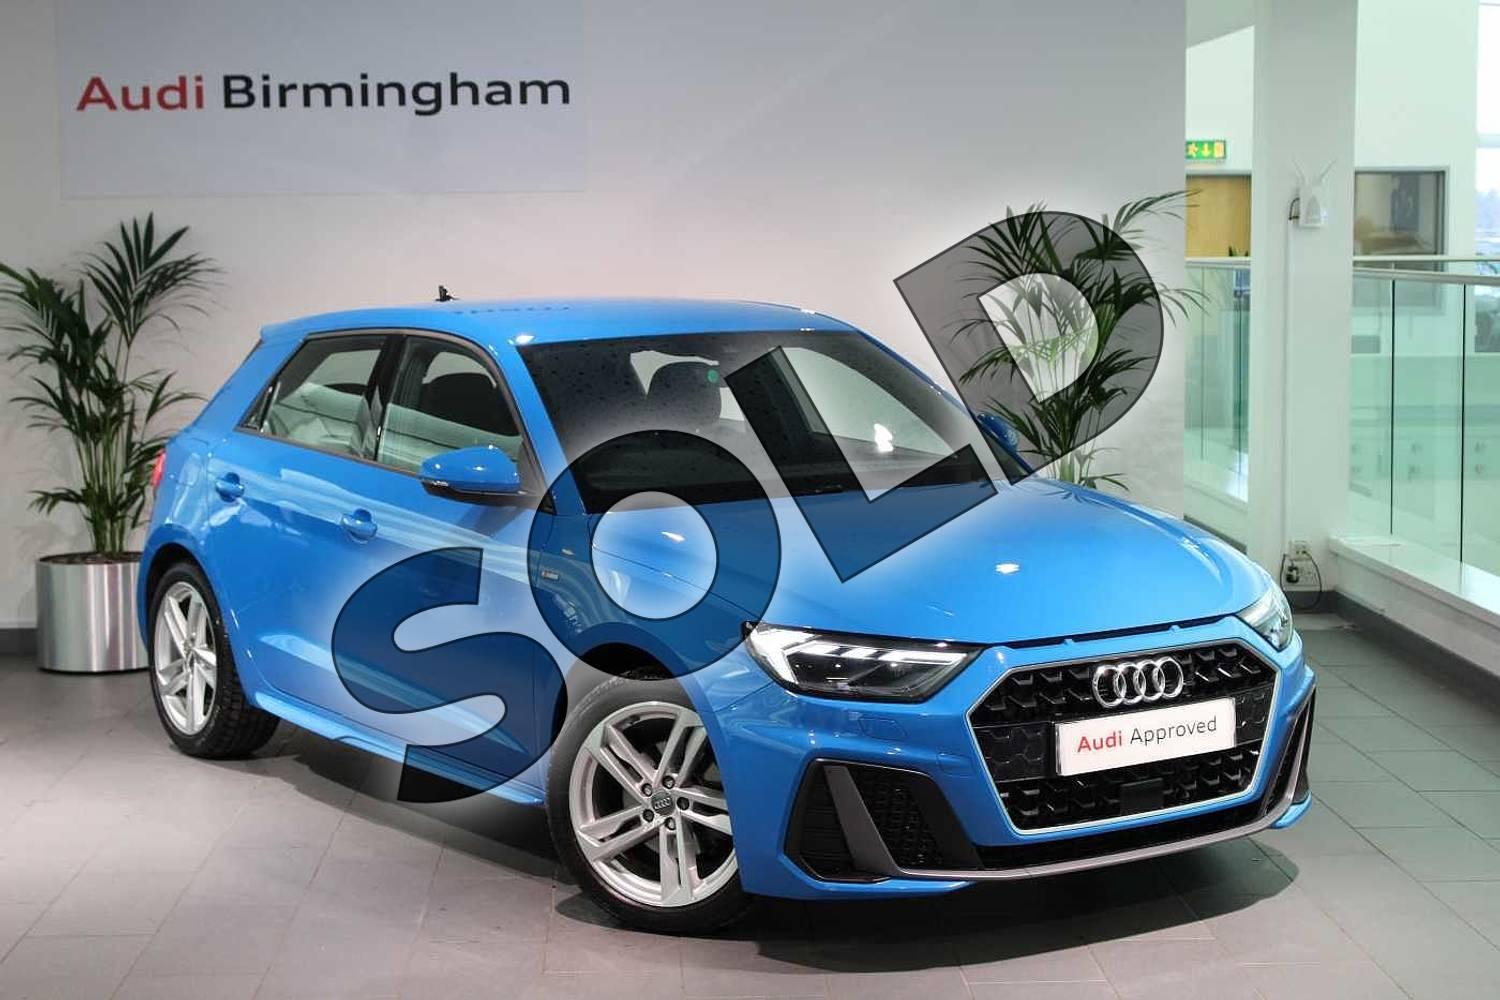 2019 Audi A1 Sportback 35 TFSI S Line 5dr in Turbo Blue at Coventry Audi